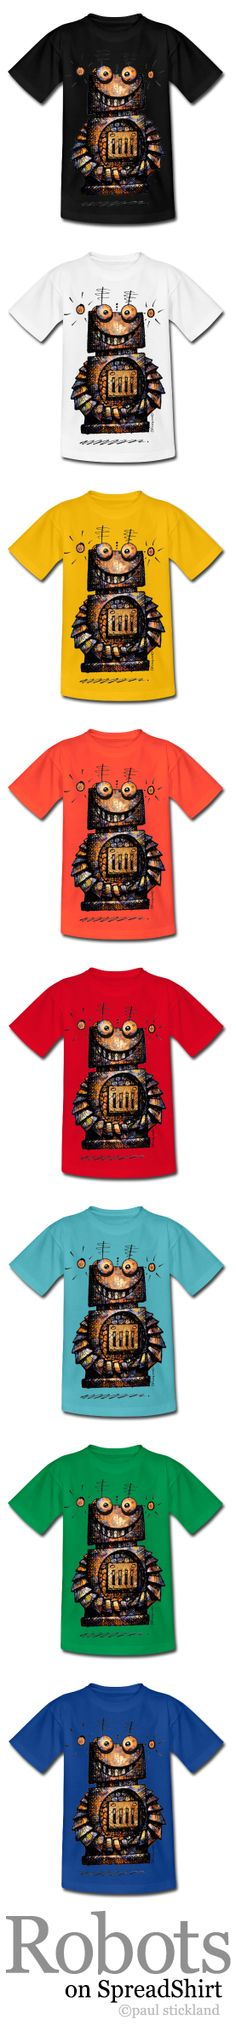 Whoa! Loads of Little Robot T Shirts!  Can't resist all the colours!  www.paulstickland.spreadshirt.co.uk